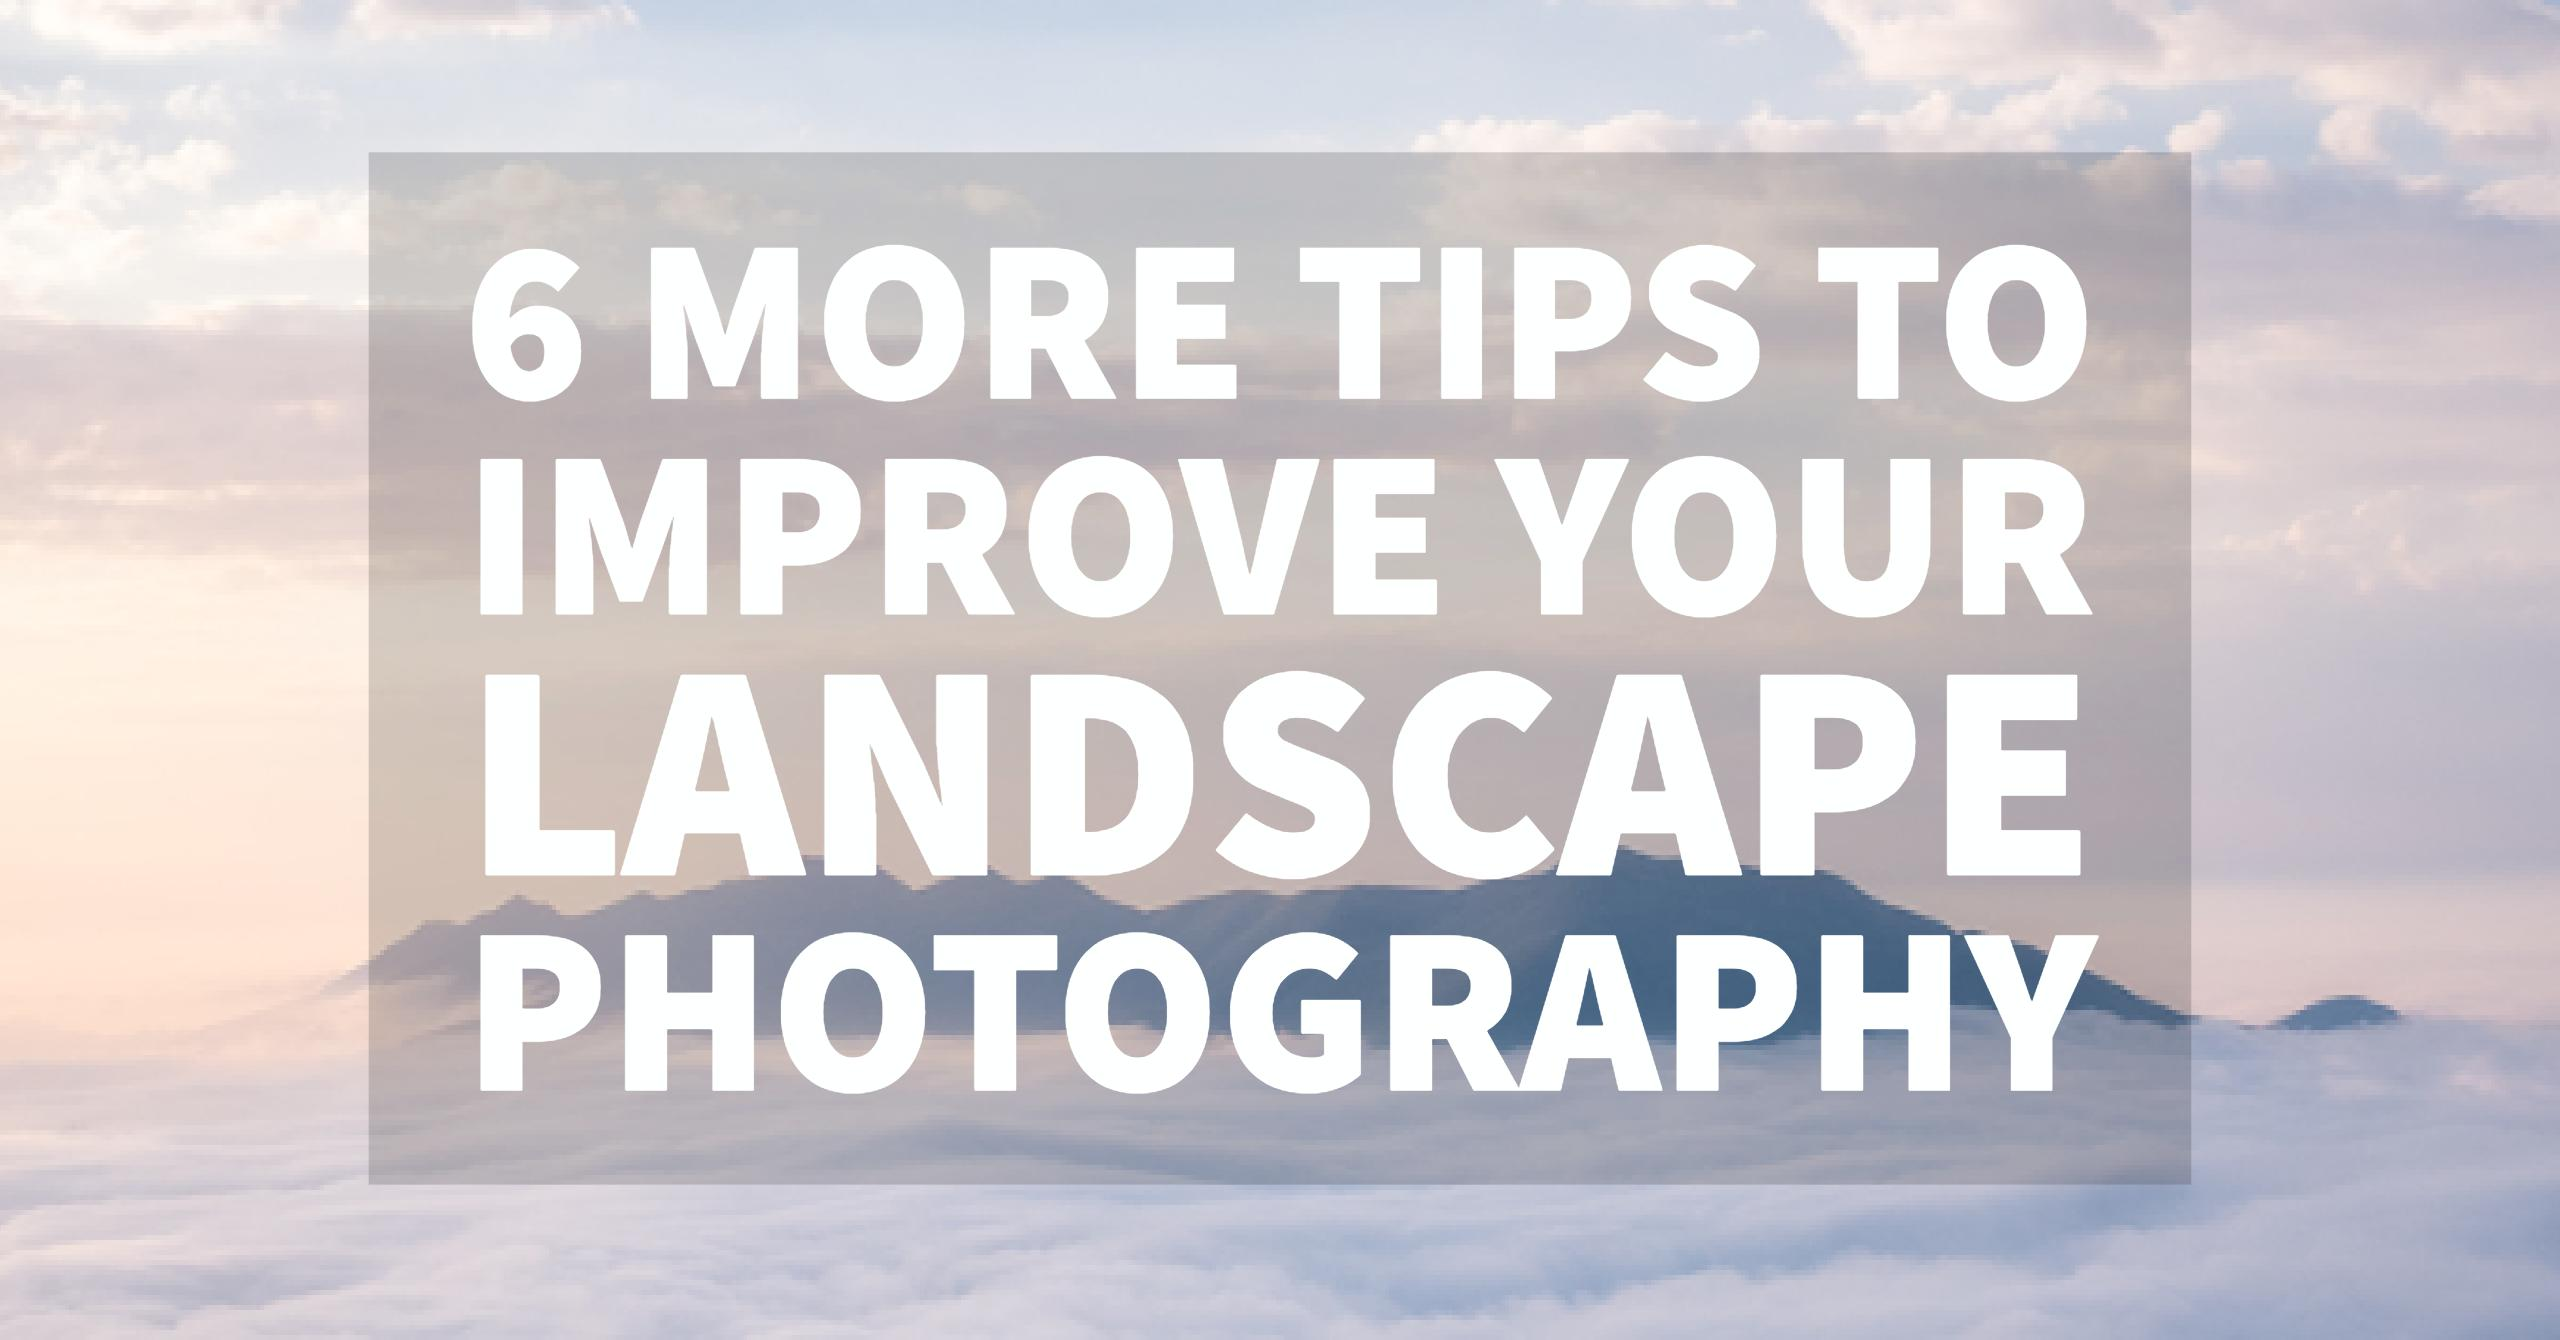 images?q=tbn:ANd9GcQh_l3eQ5xwiPy07kGEXjmjgmBKBRB7H2mRxCGhv1tFWg5c_mWT Top Info How To Improve Landscape Photography Now Gallery @capturingmomentsphotography.net